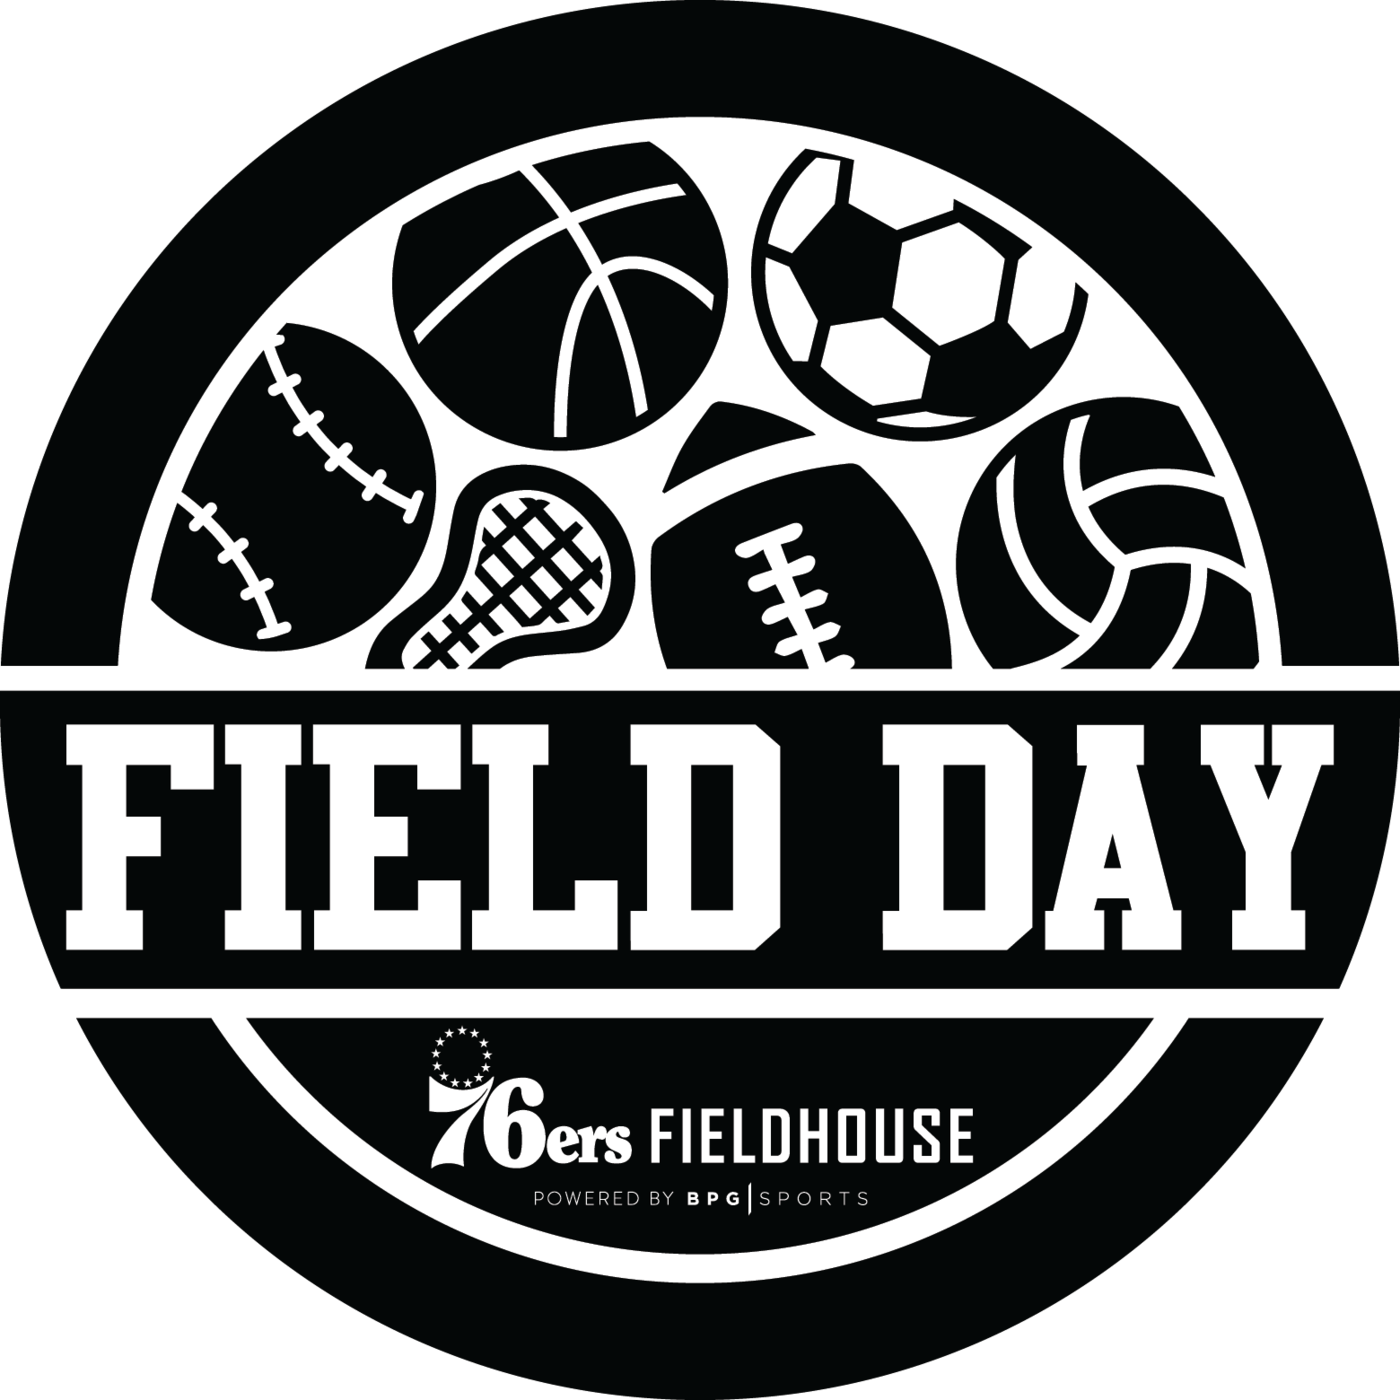 Field Day Logo by Michael Edelin at Coroflot.com.